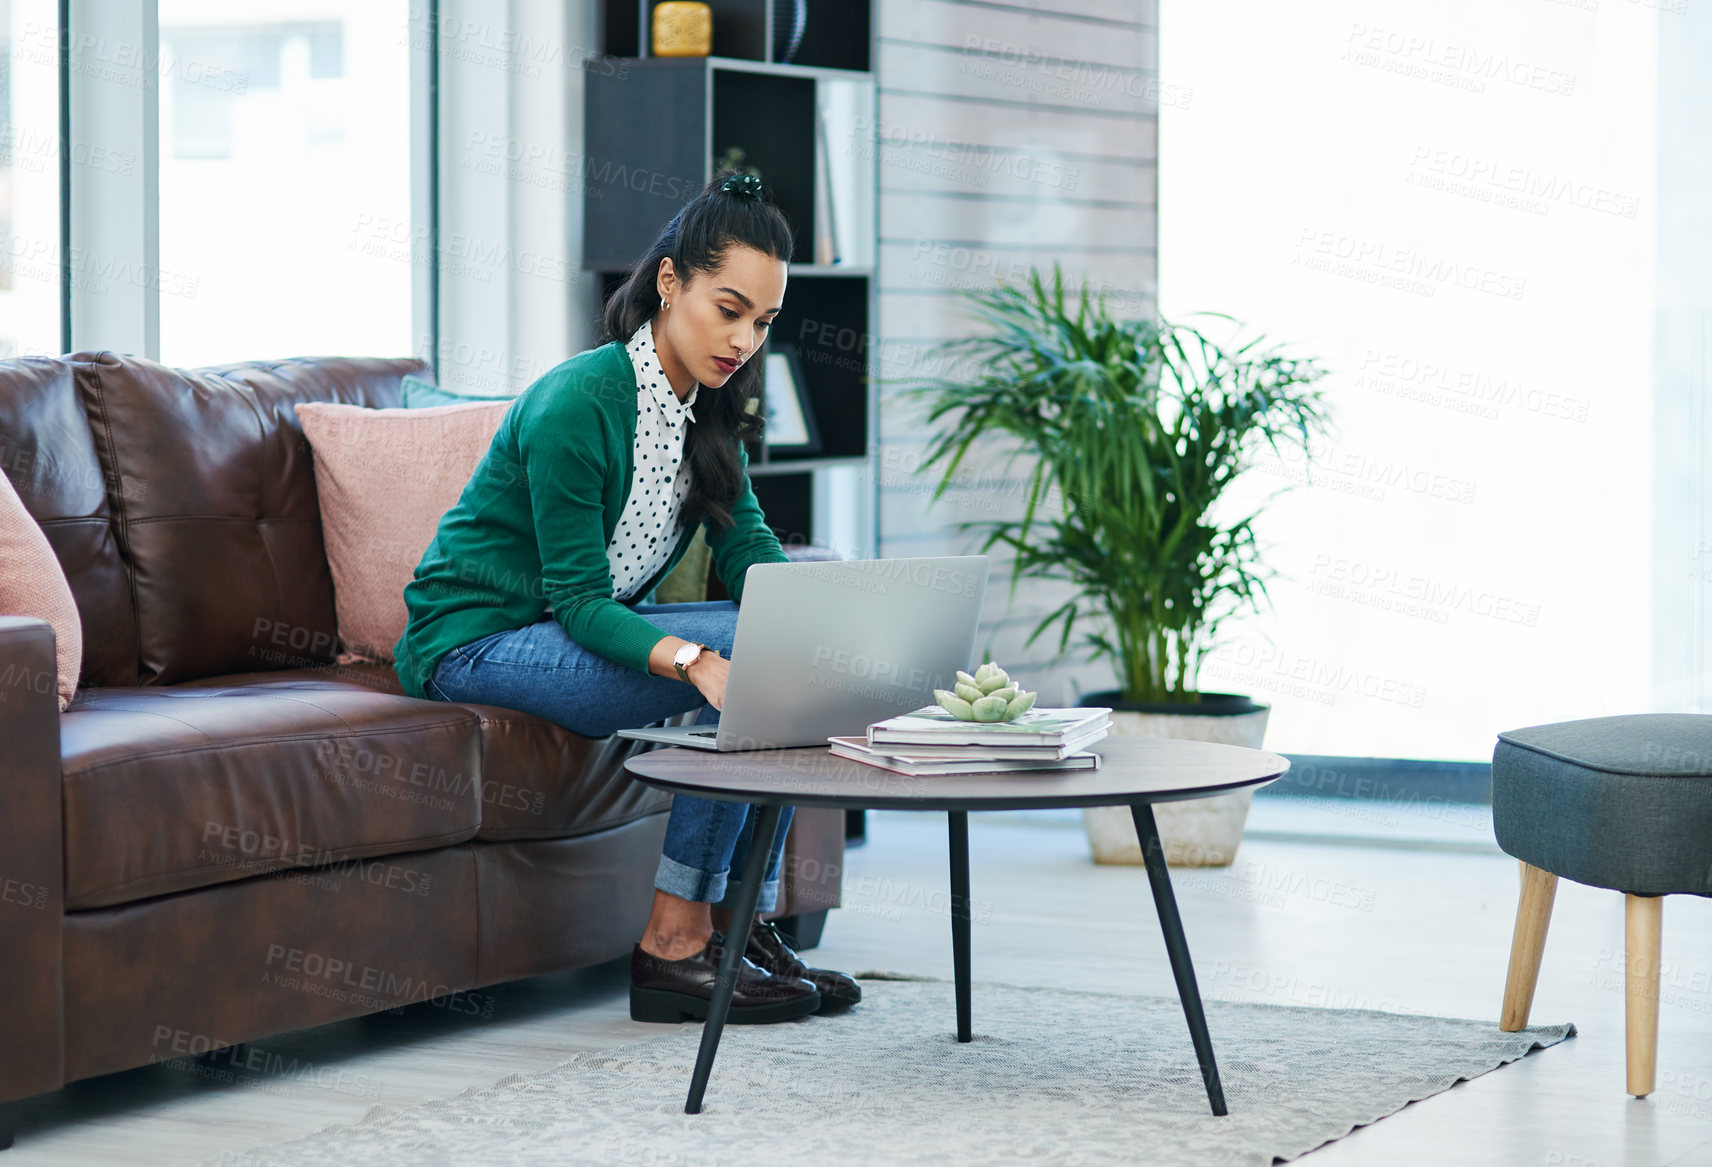 Buy stock photo Shot of a young woman using a laptop while relaxing on a sofa